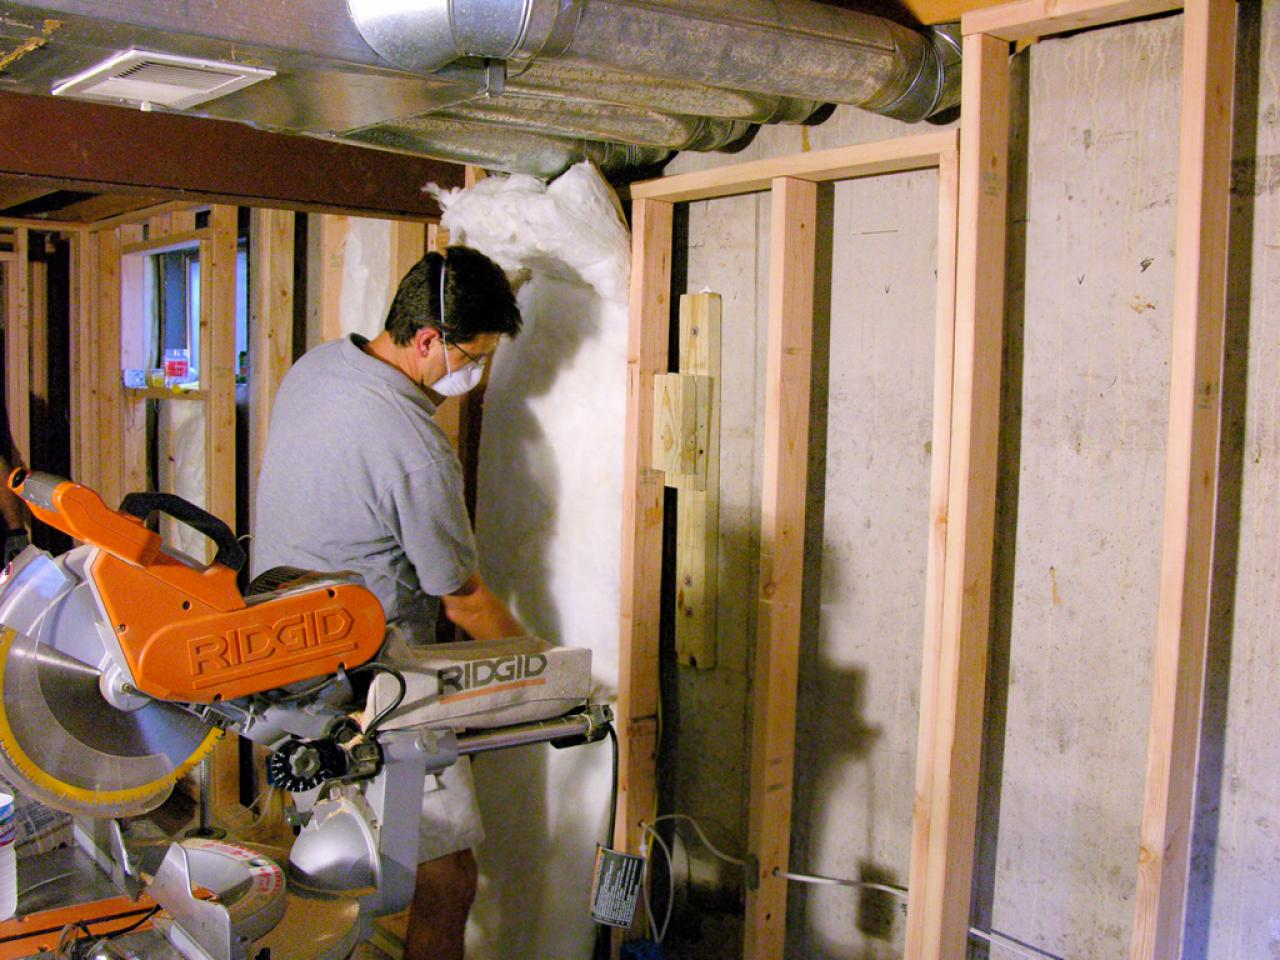 Basement Insulation Options And Solutions HGTV - Unfinished basement wall covering